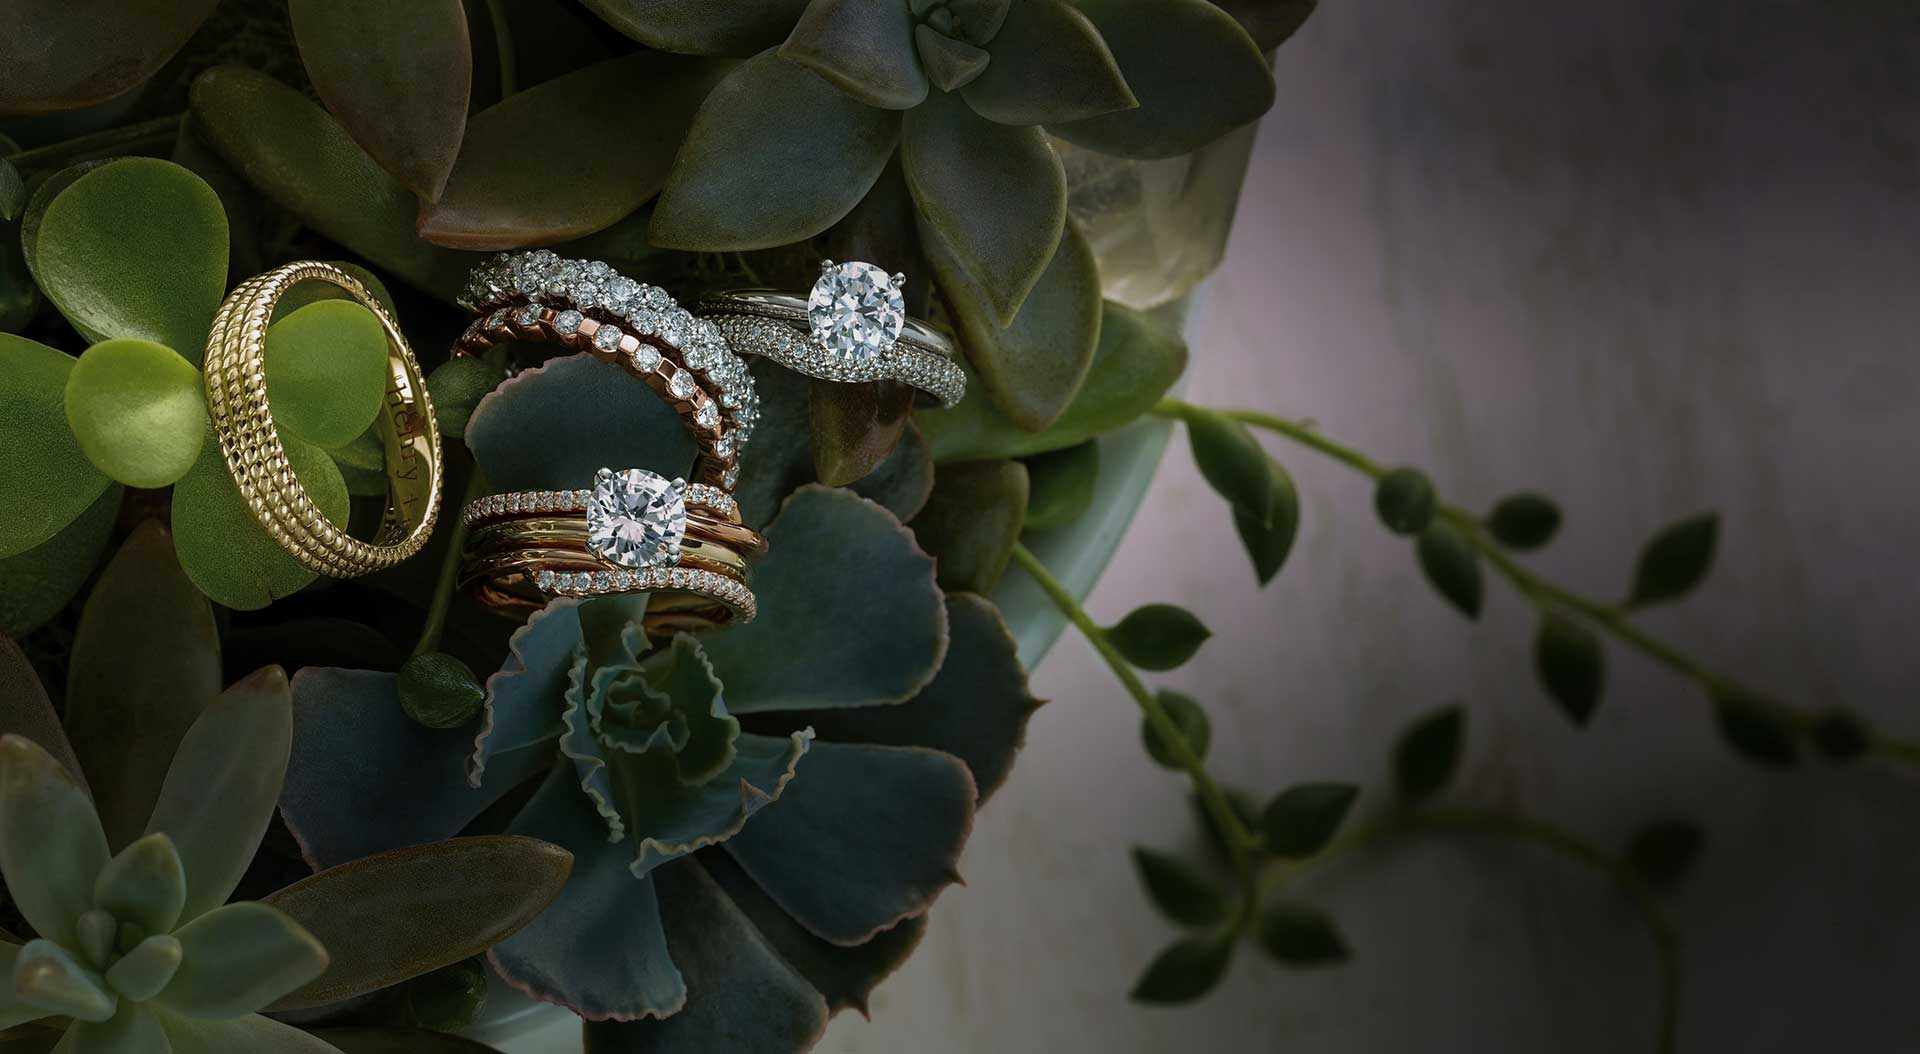 gold and silver wedding bands and rings with diamonds sitting on succulents